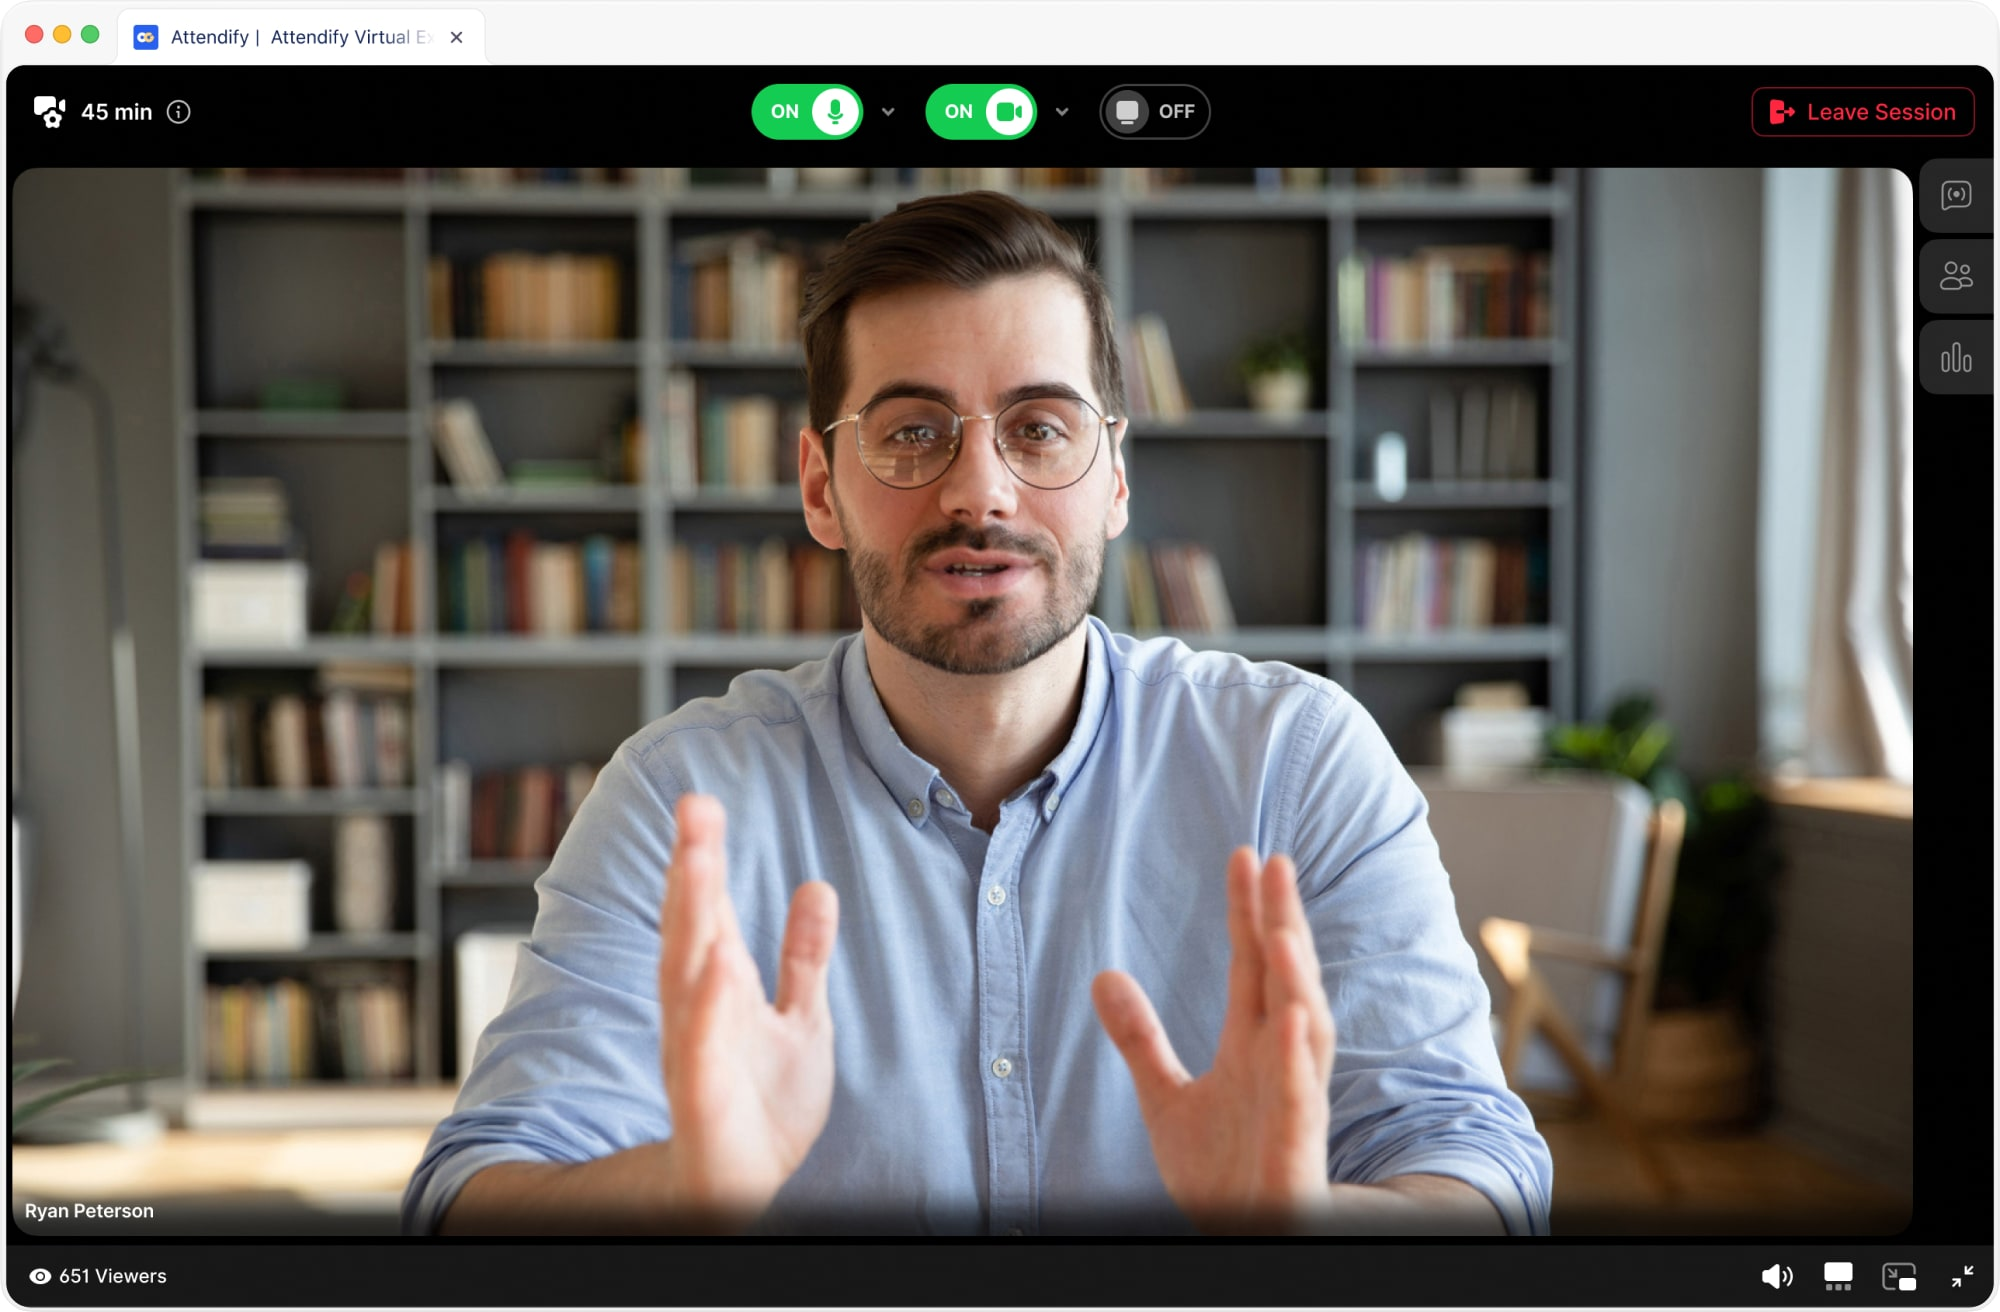 Attendify provides native live streaming and integrated streaming options for virtual events